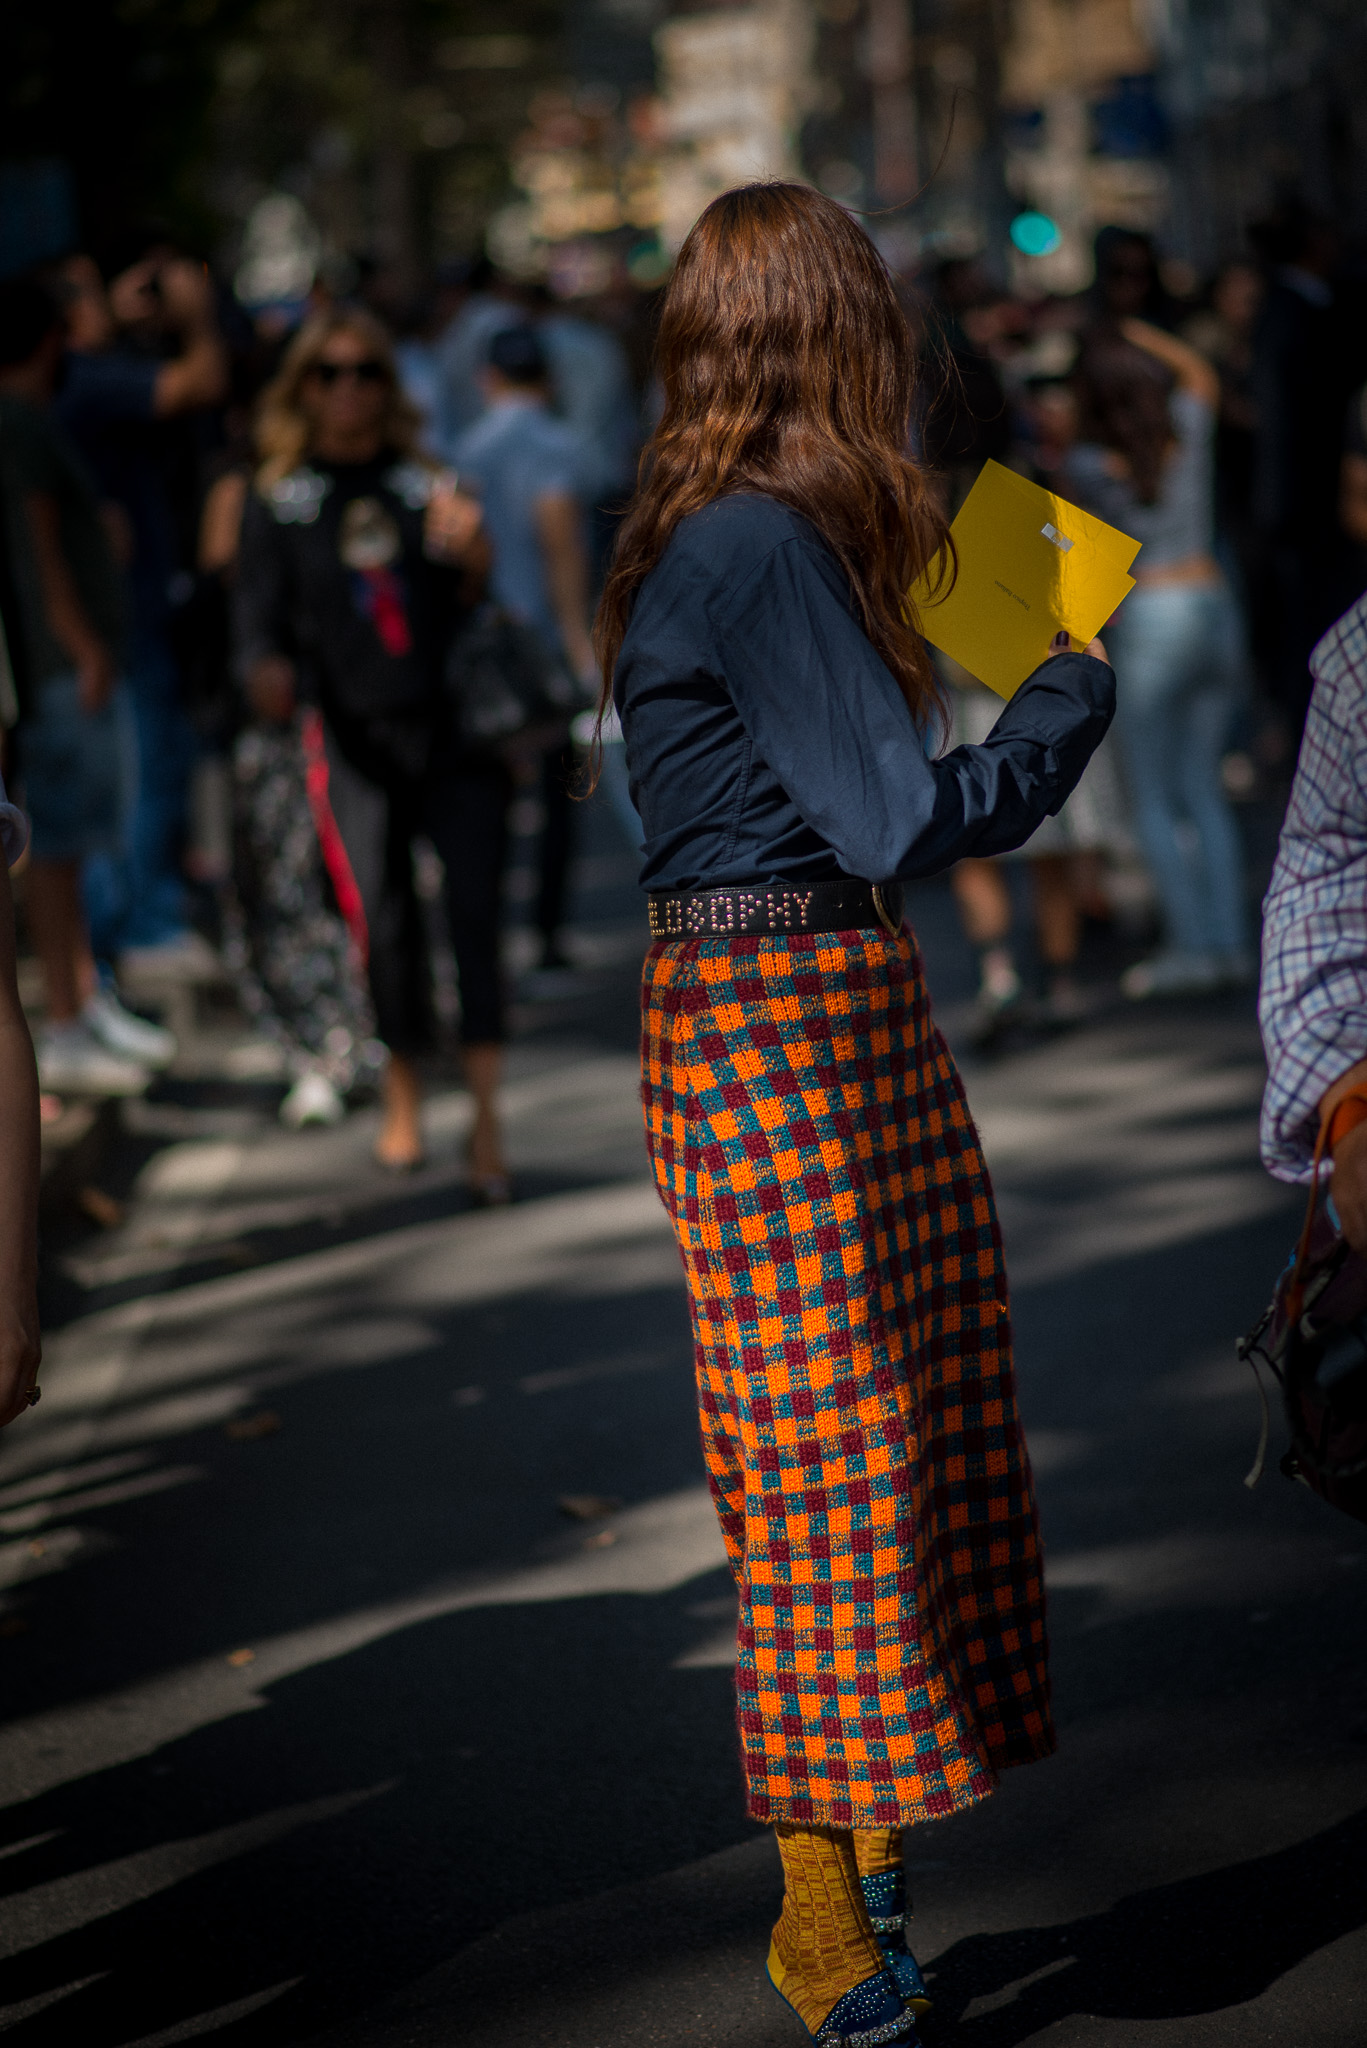 street-style_dolce-gabbana-_milan-fashion-week_sept-2016_photography-annika-lagerqvist_www-annikasomething-com-9